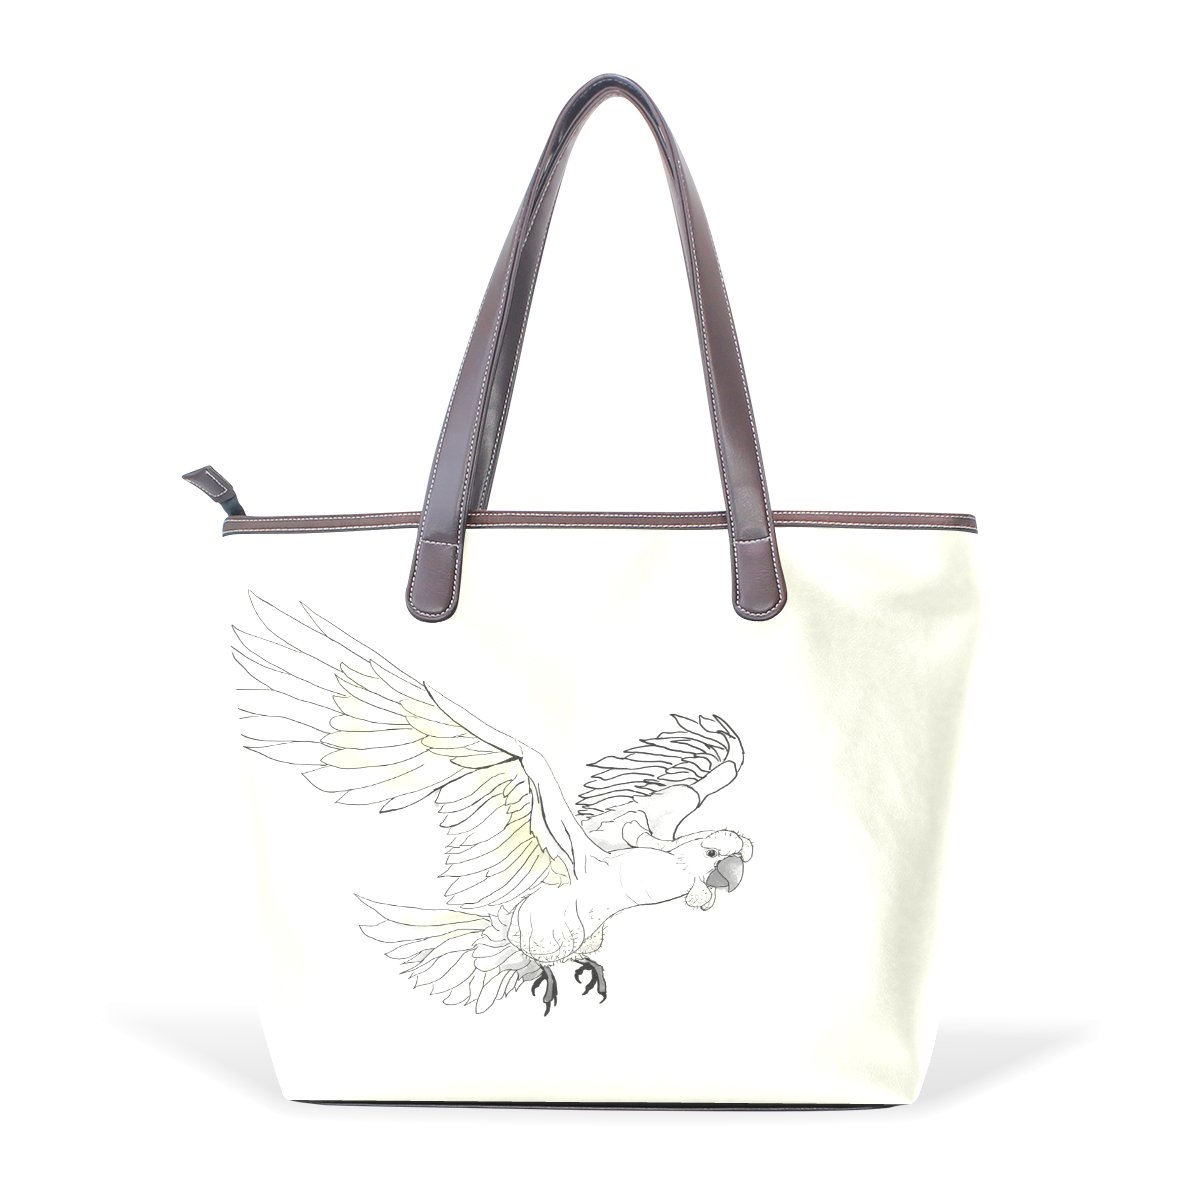 Ye Store Painting The Parrot Lady PU Leather Handbag Tote Bag Shoulder Bag Shopping Bag